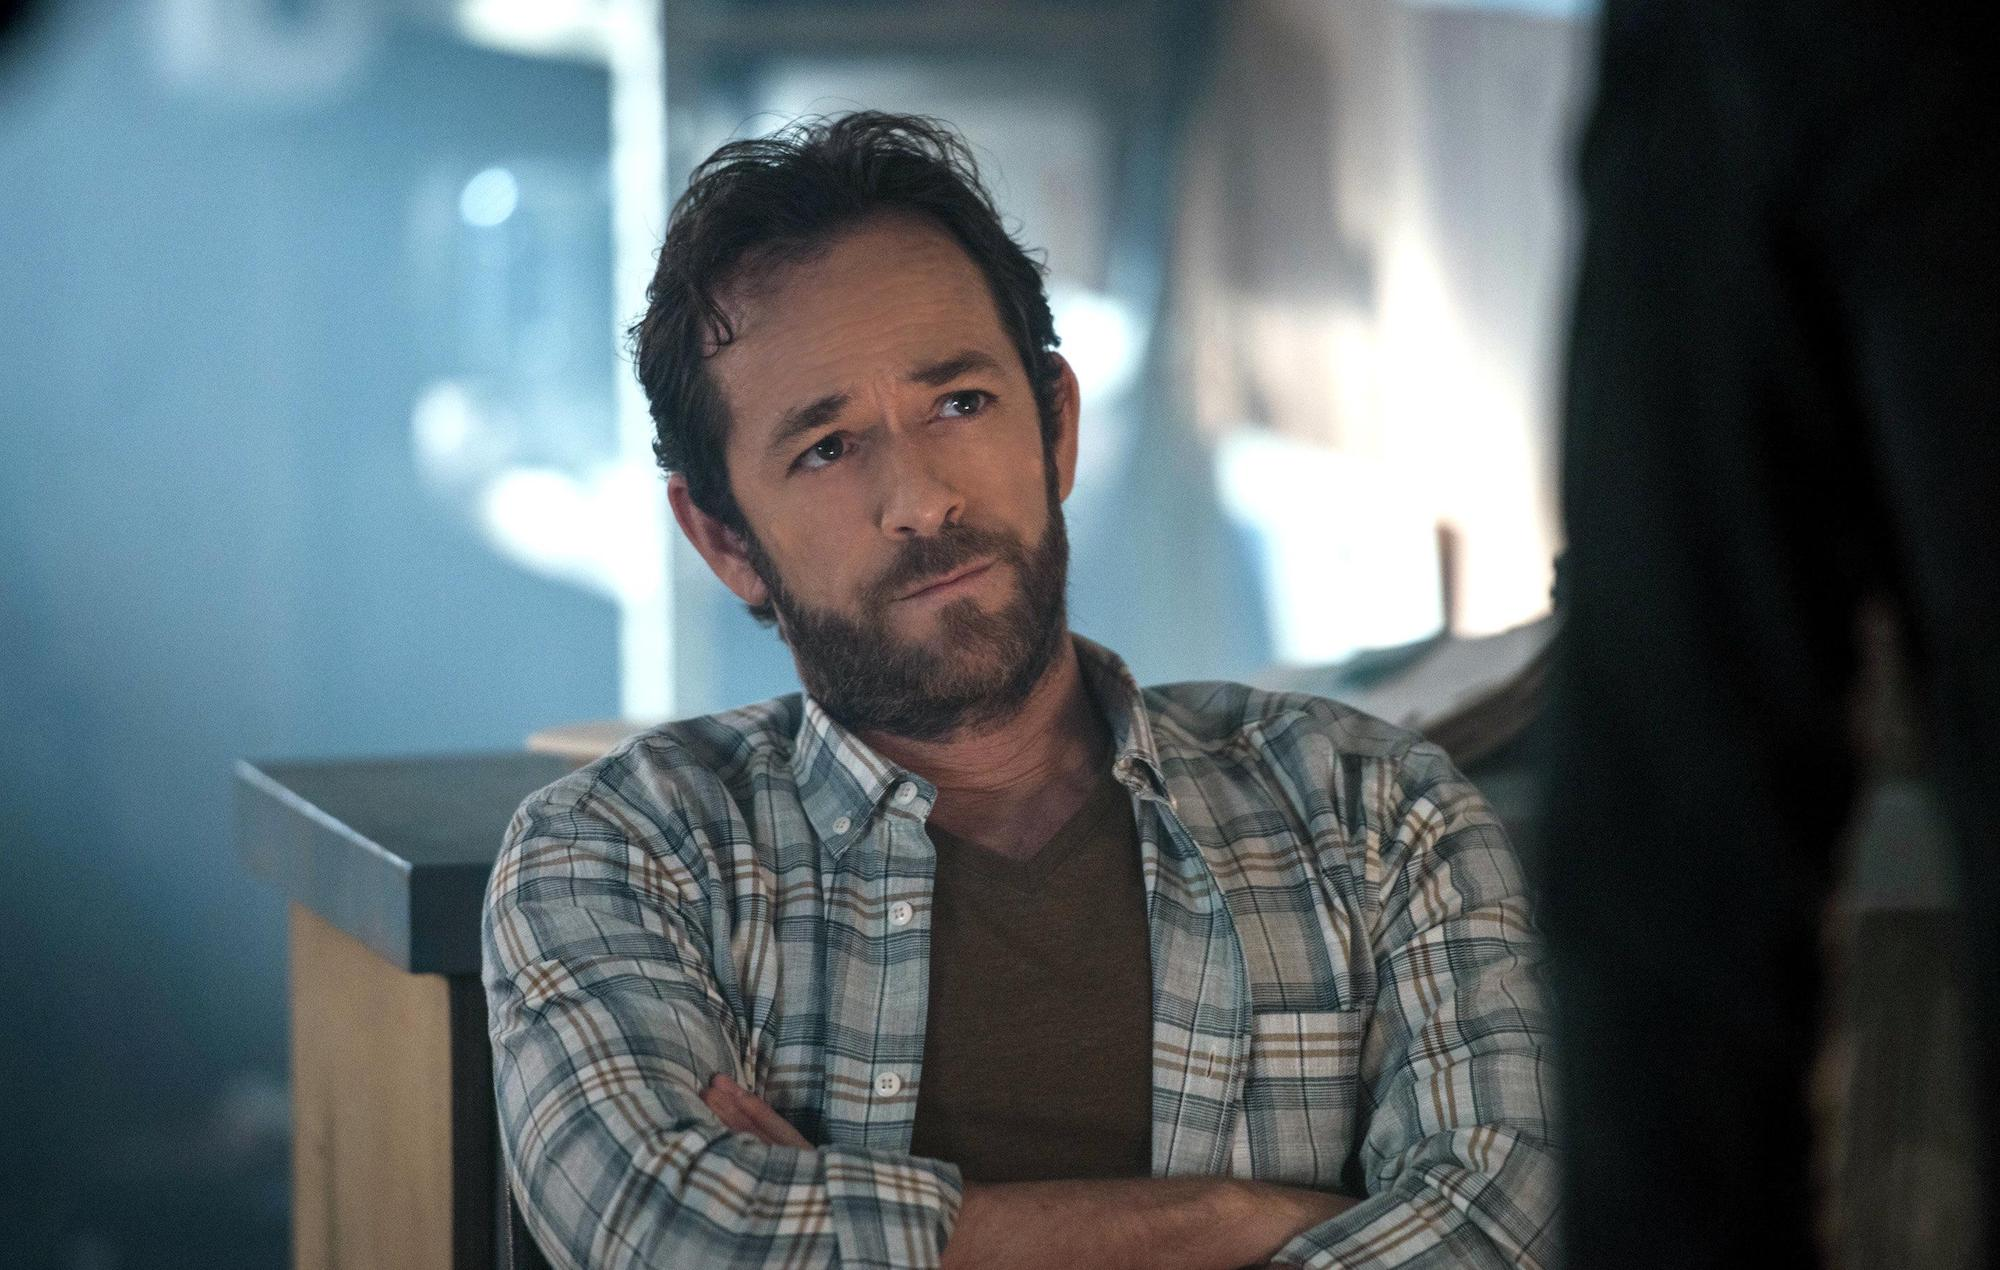 'Riverdale' Season 4 Episode 1 recap: a beautiful and poignant tribute to Luke Perry